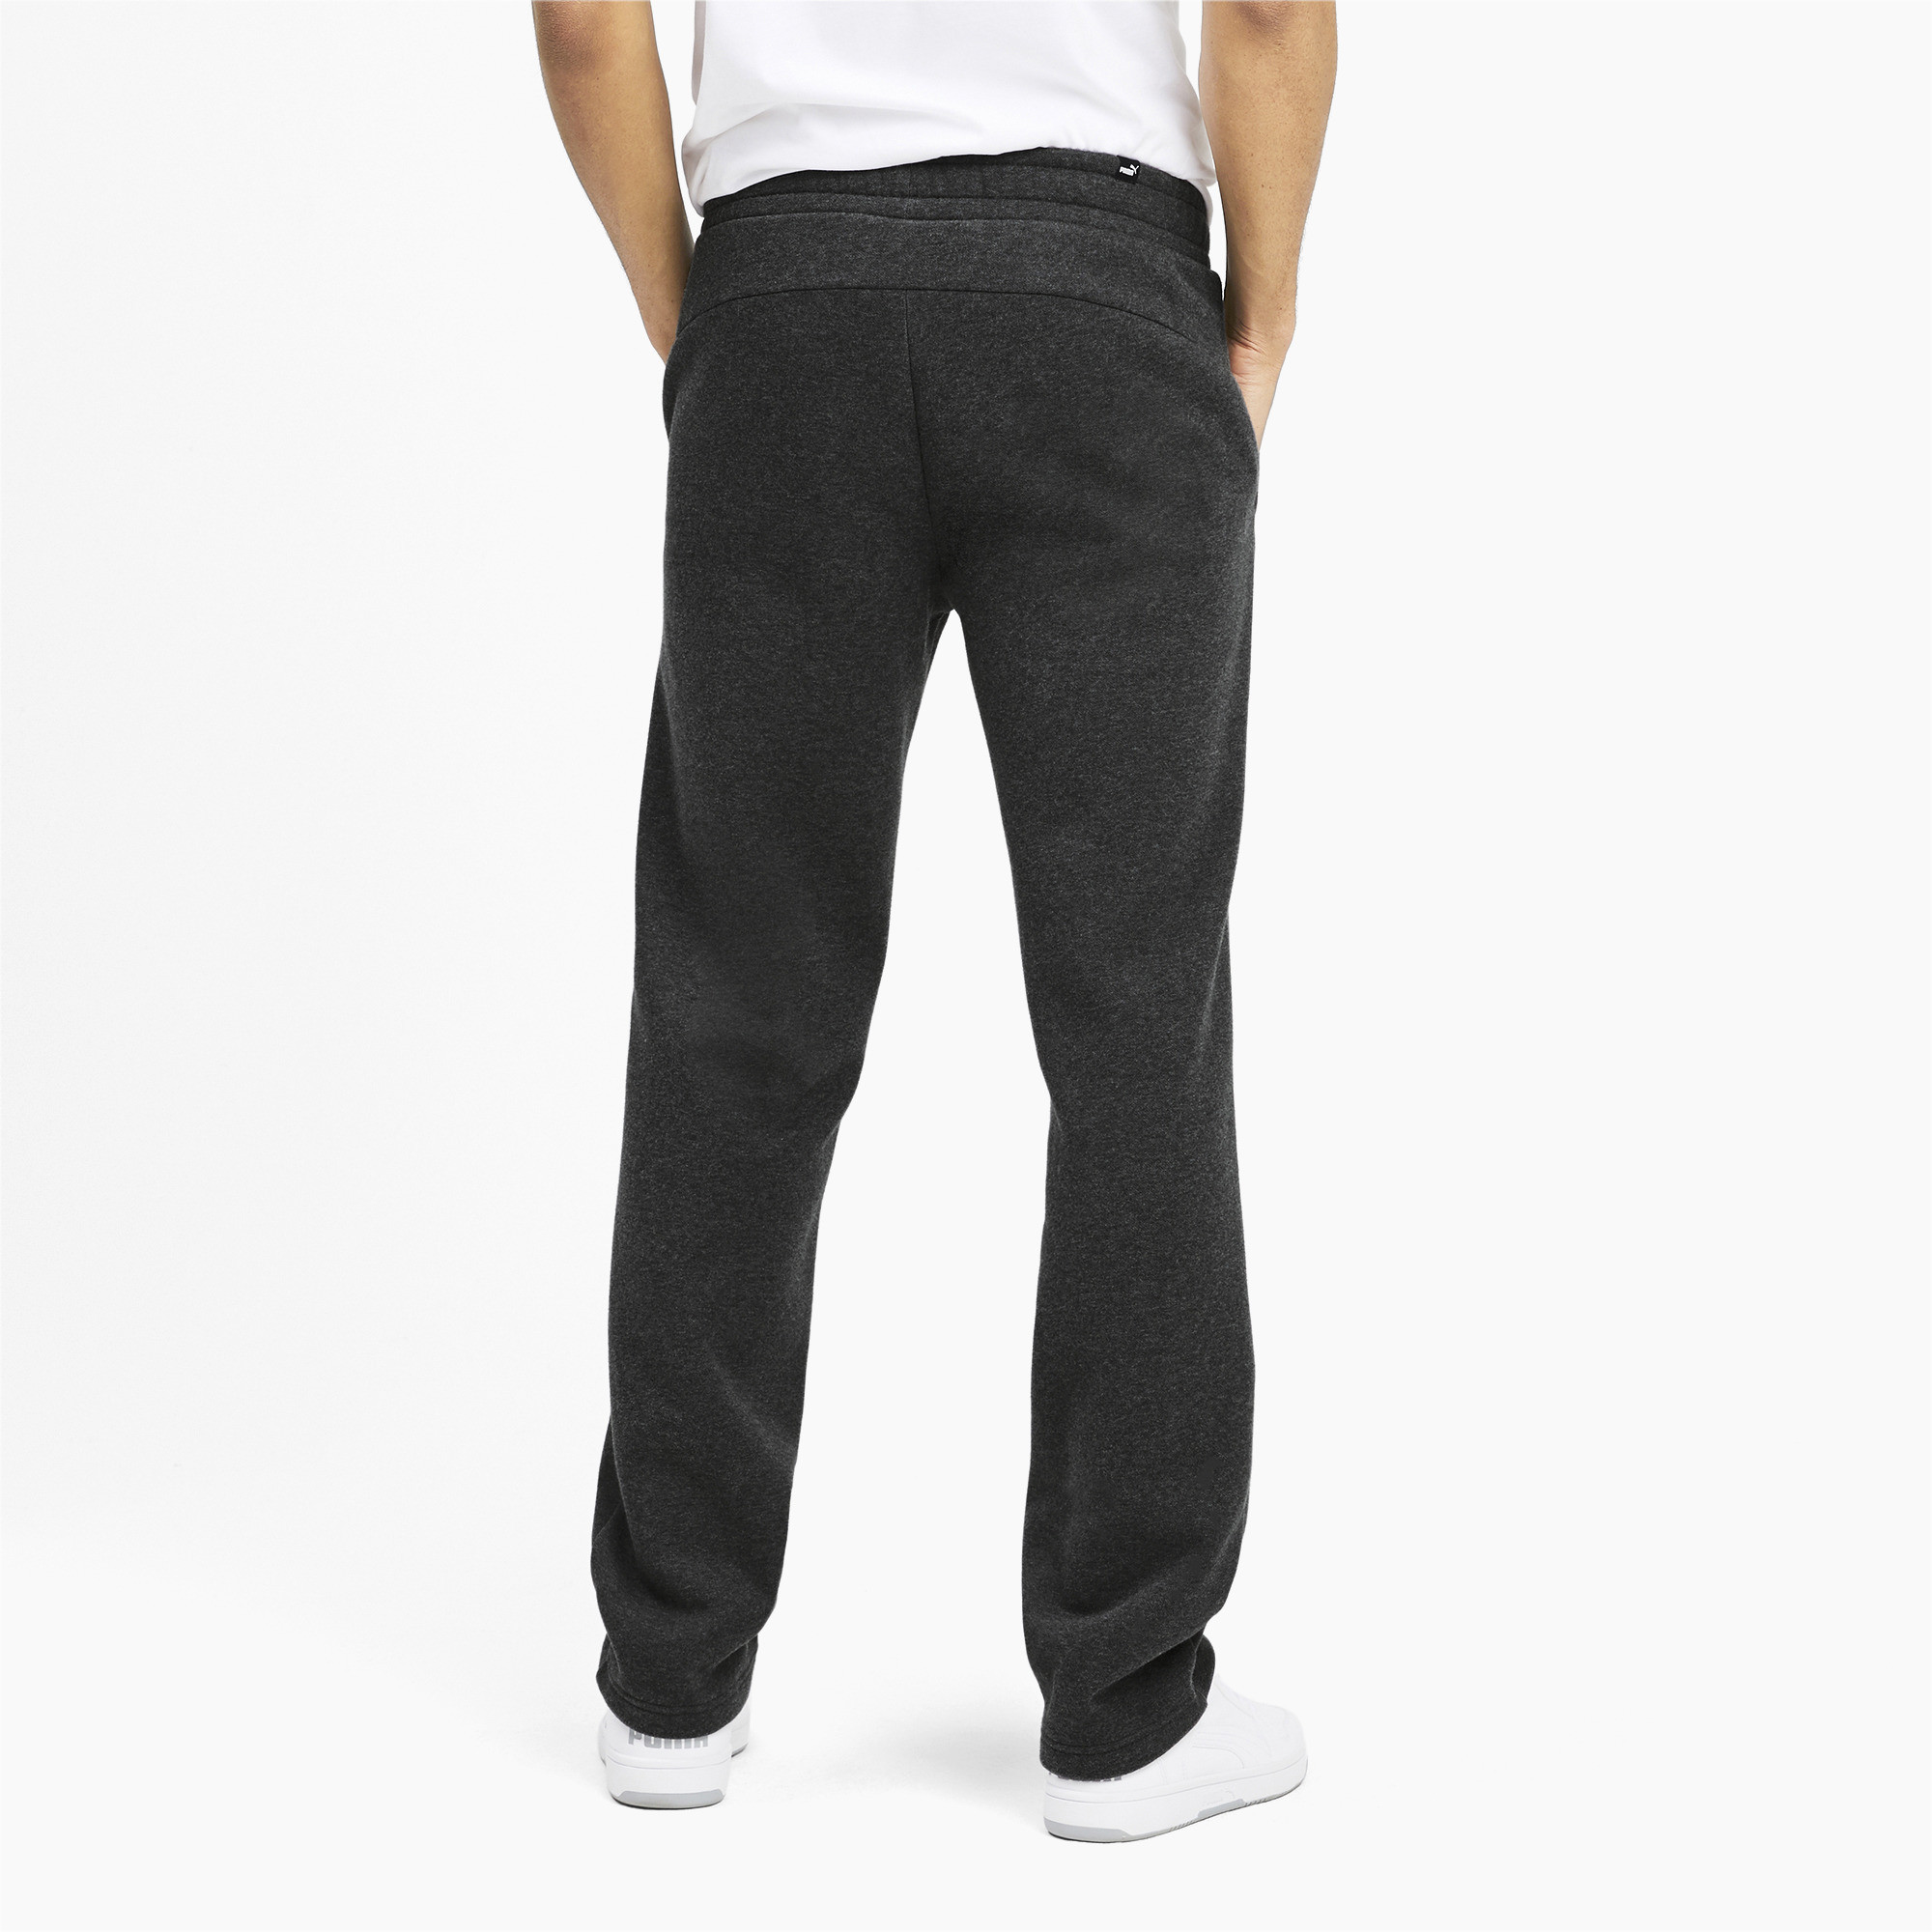 PUMA-Essentials-Men-039-s-Fleece-Pants-Men-Knitted-Pants-Basics thumbnail 20